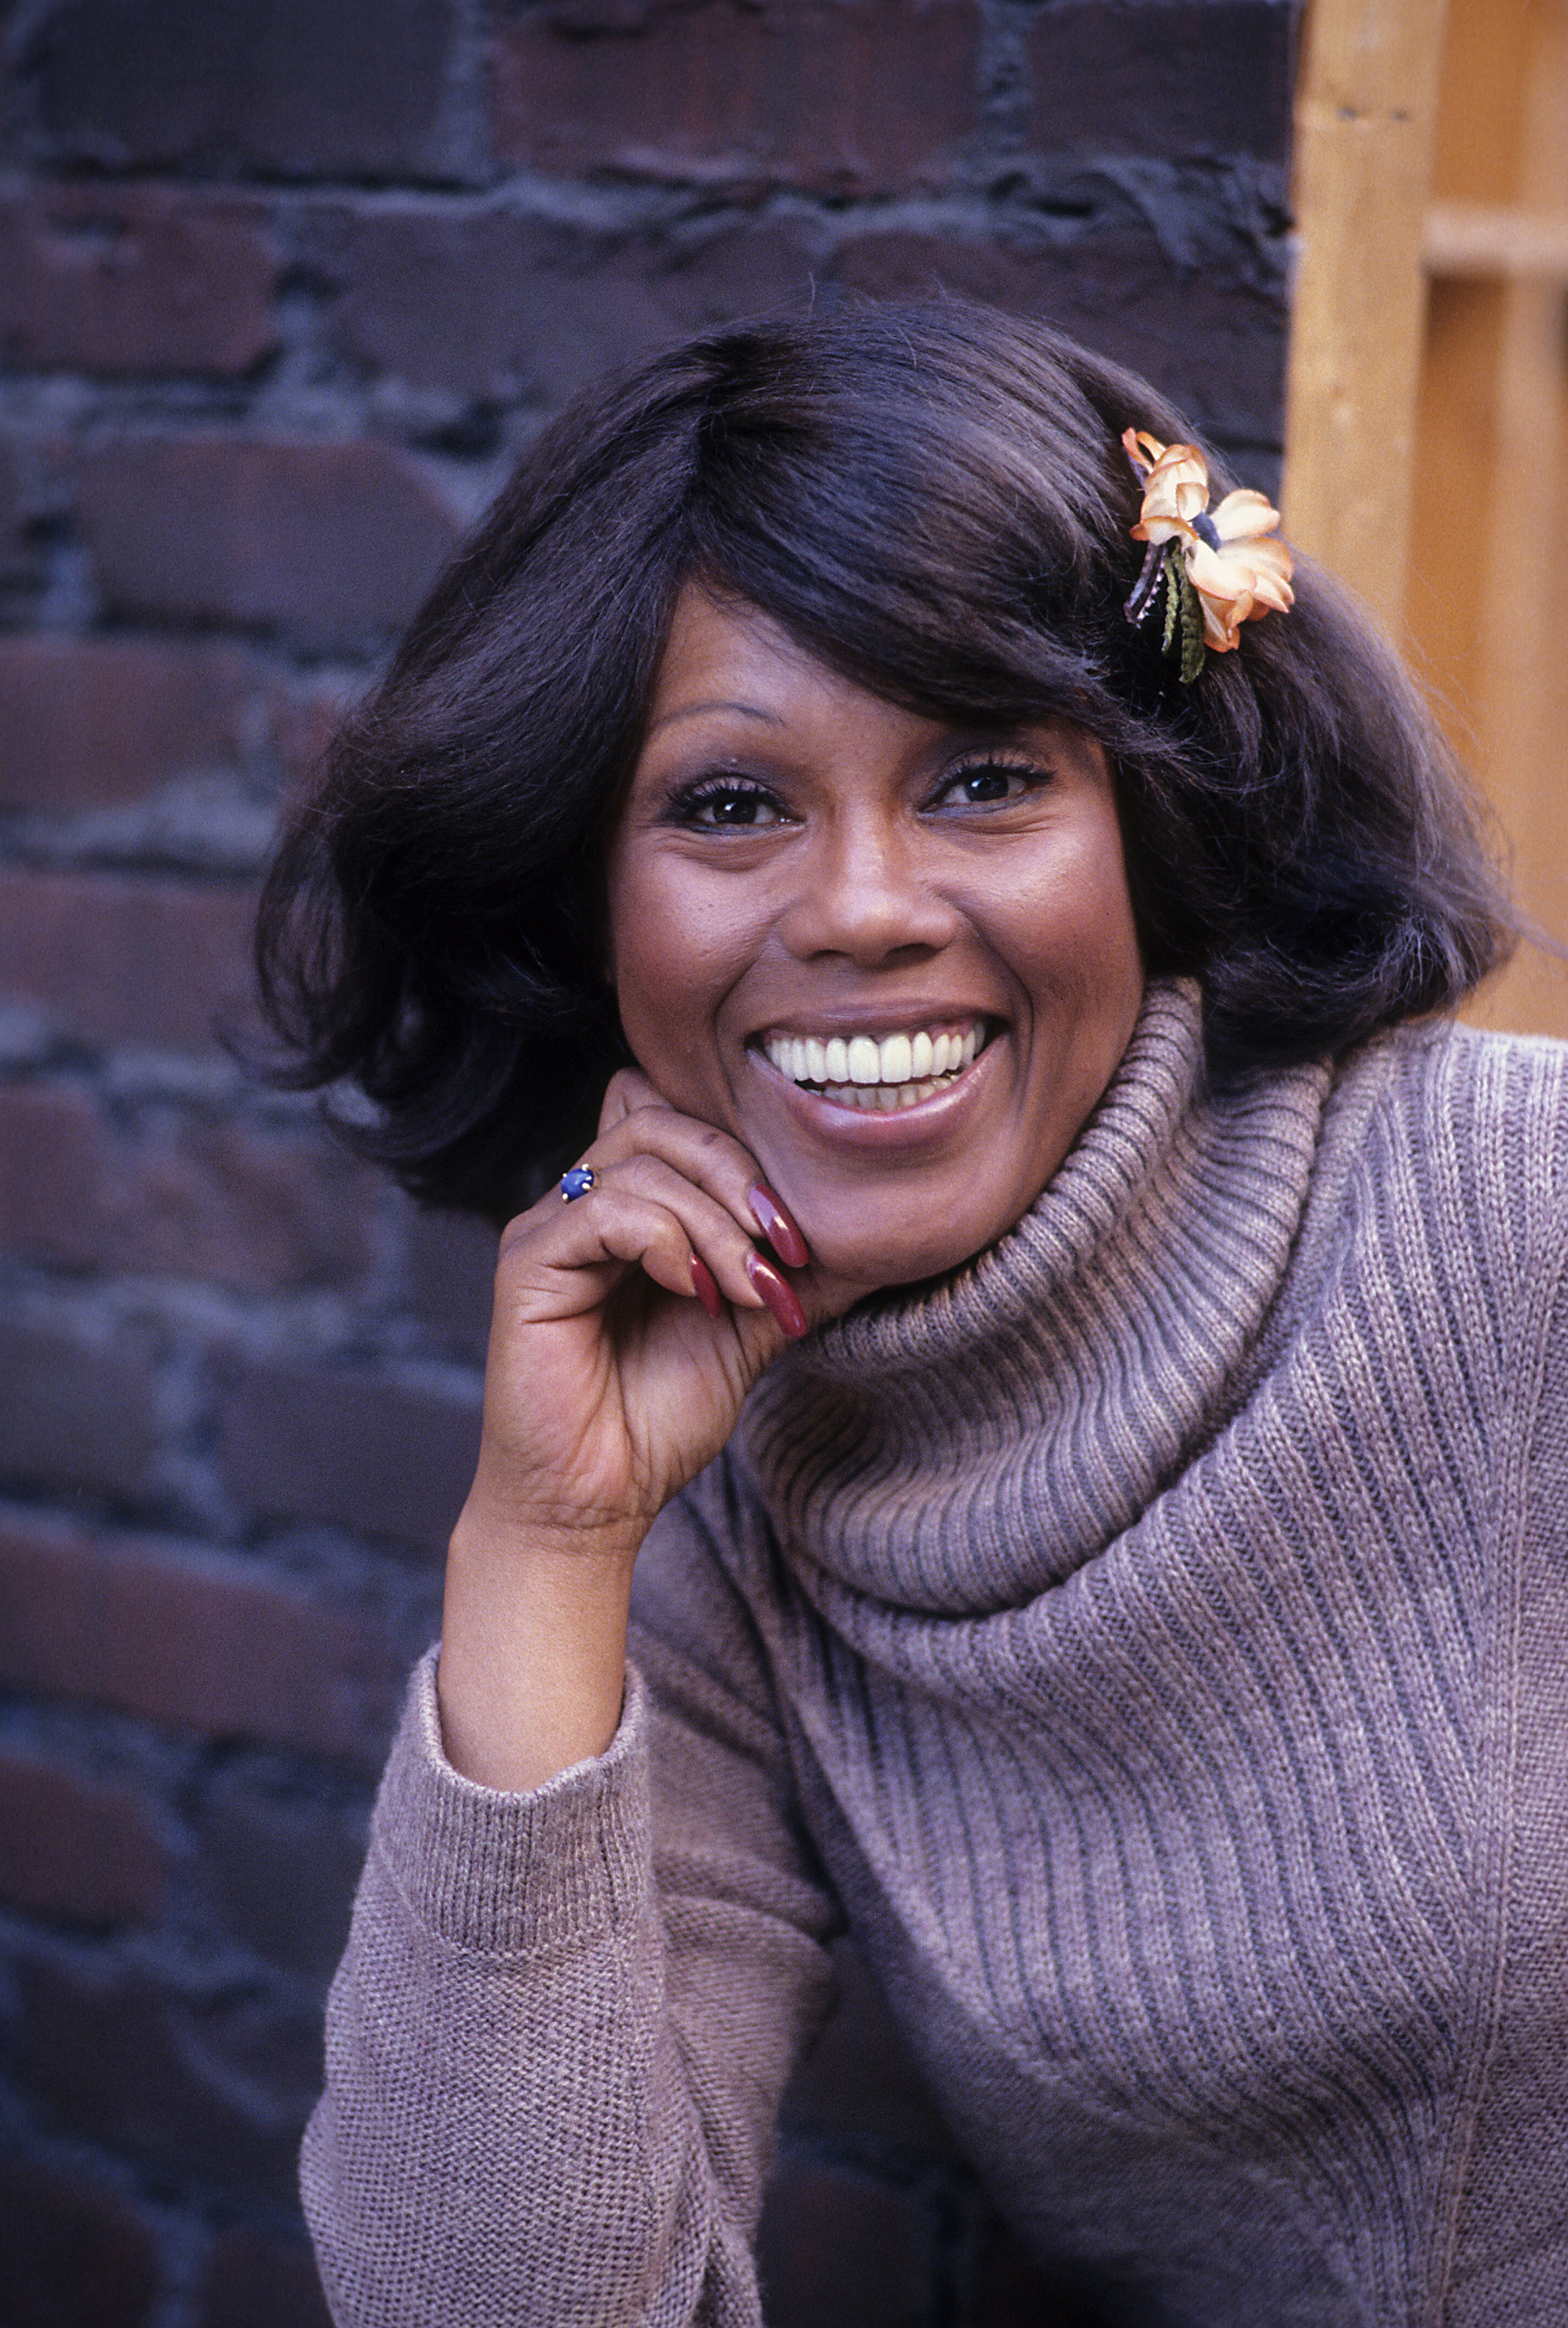 Woman in a purple sweater looking and smiling at camera